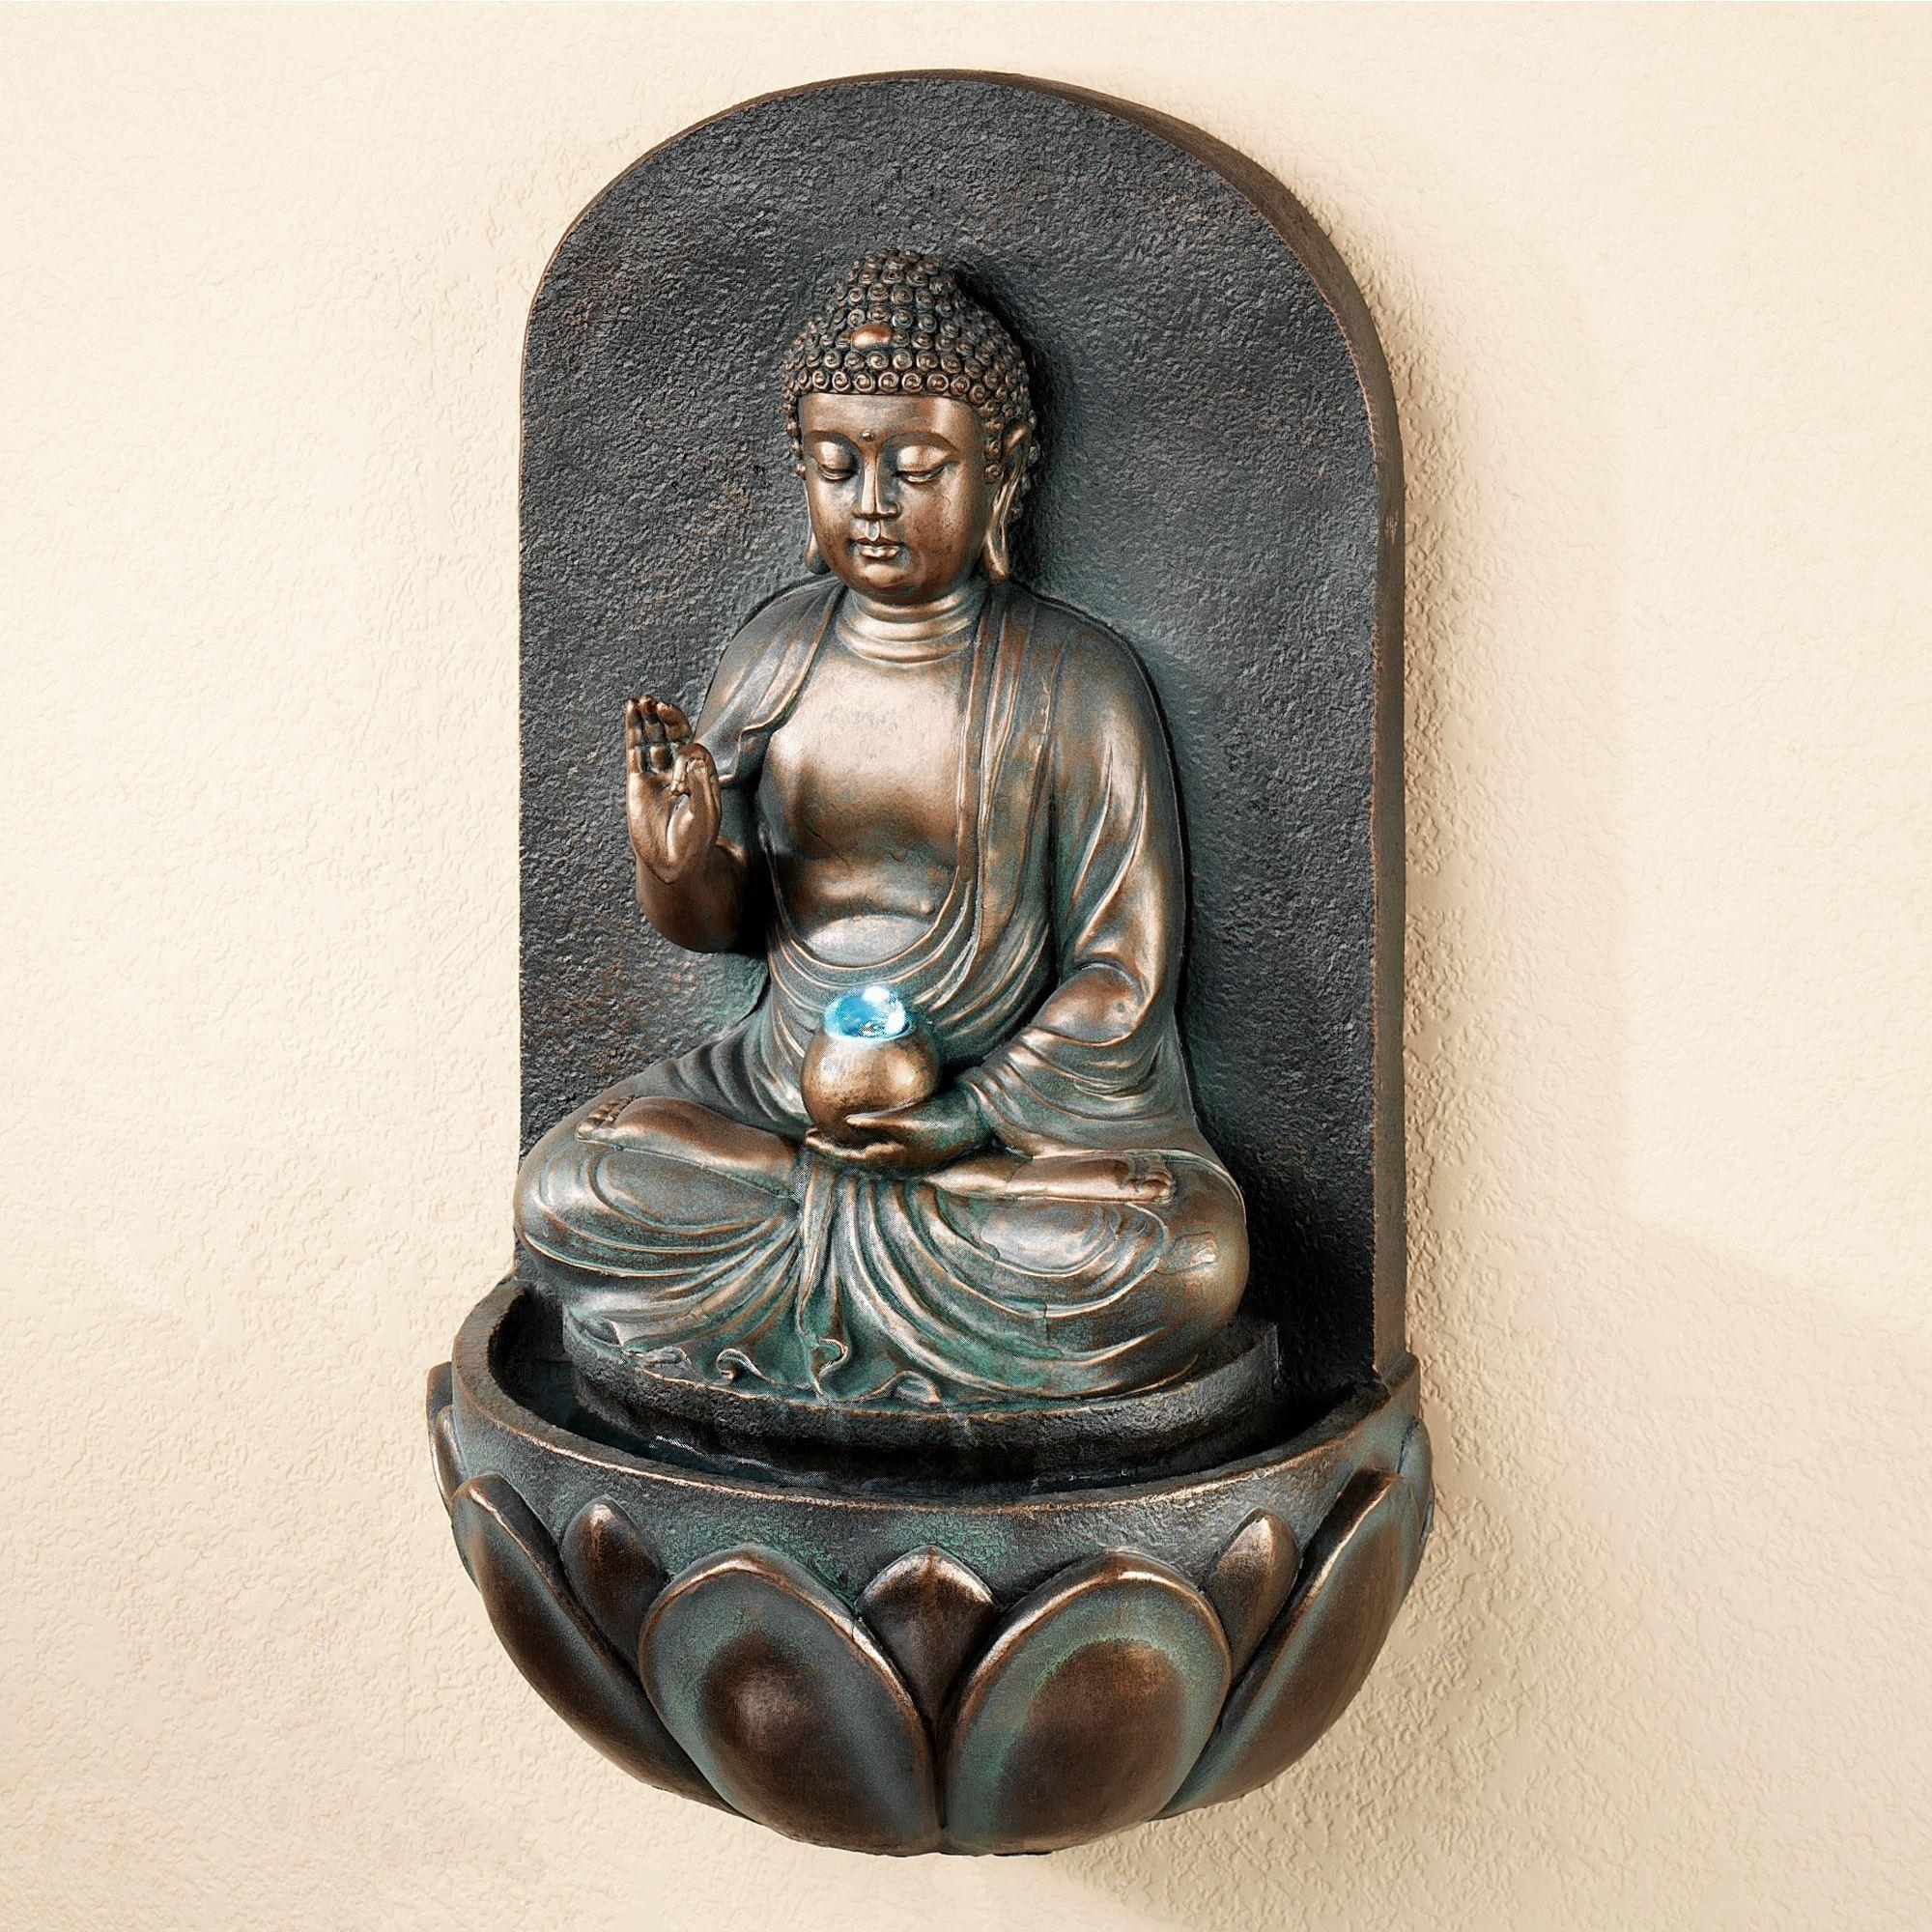 Reflecting Buddha Indoor Outdoor Wall Water Fountain Intended For Buddha Outdoor Wall Art (Image 15 of 20)